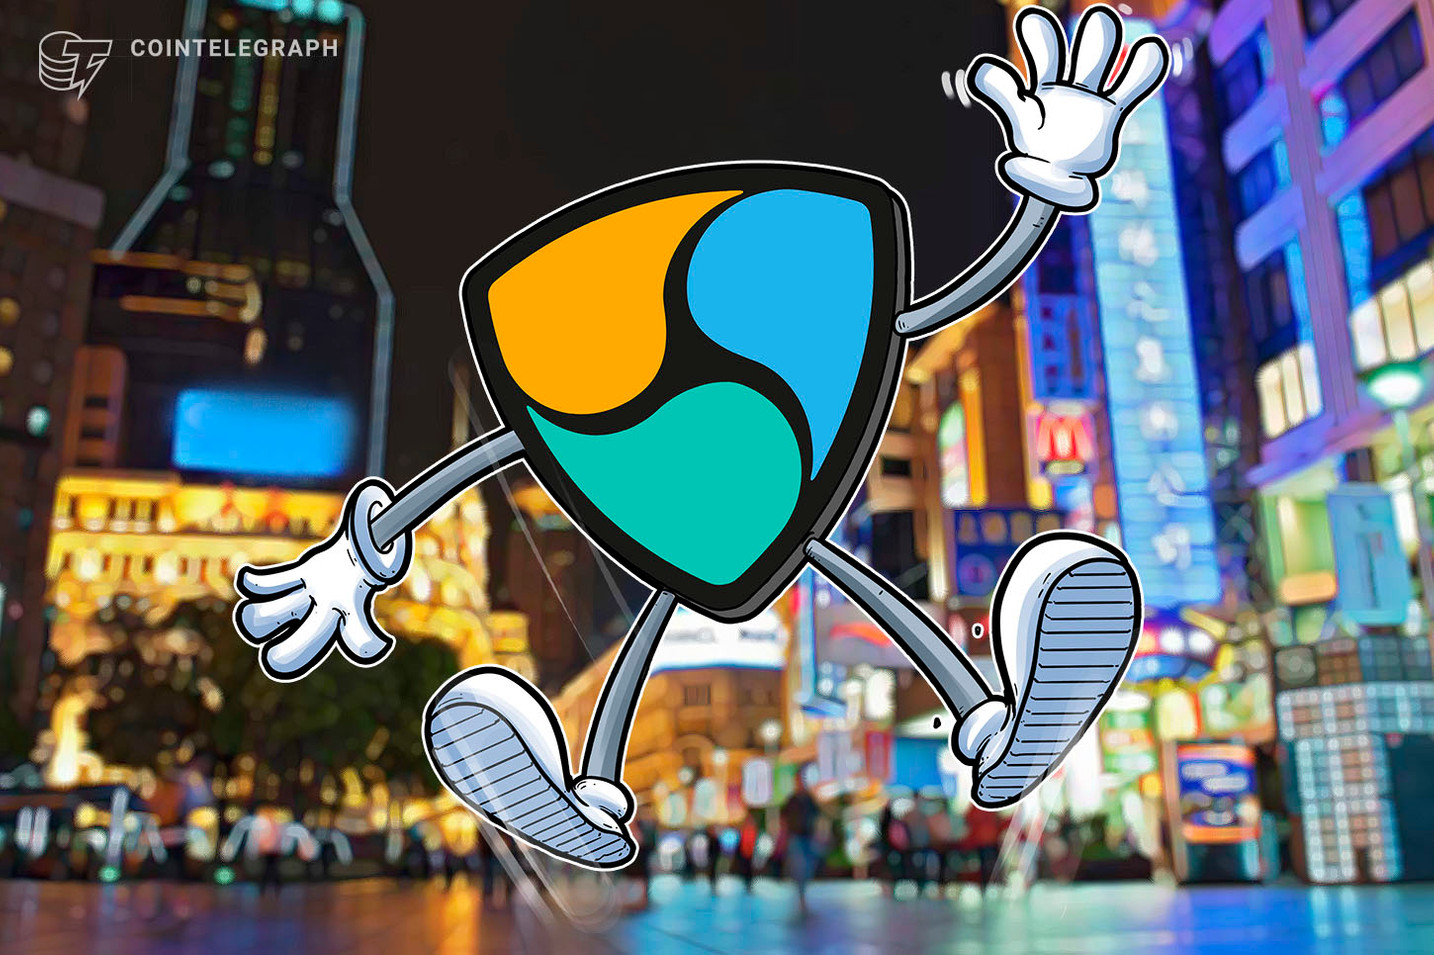 NEM (XEM) Gains 25% as Altcoins Follow Bitcoin's 30% January Surge